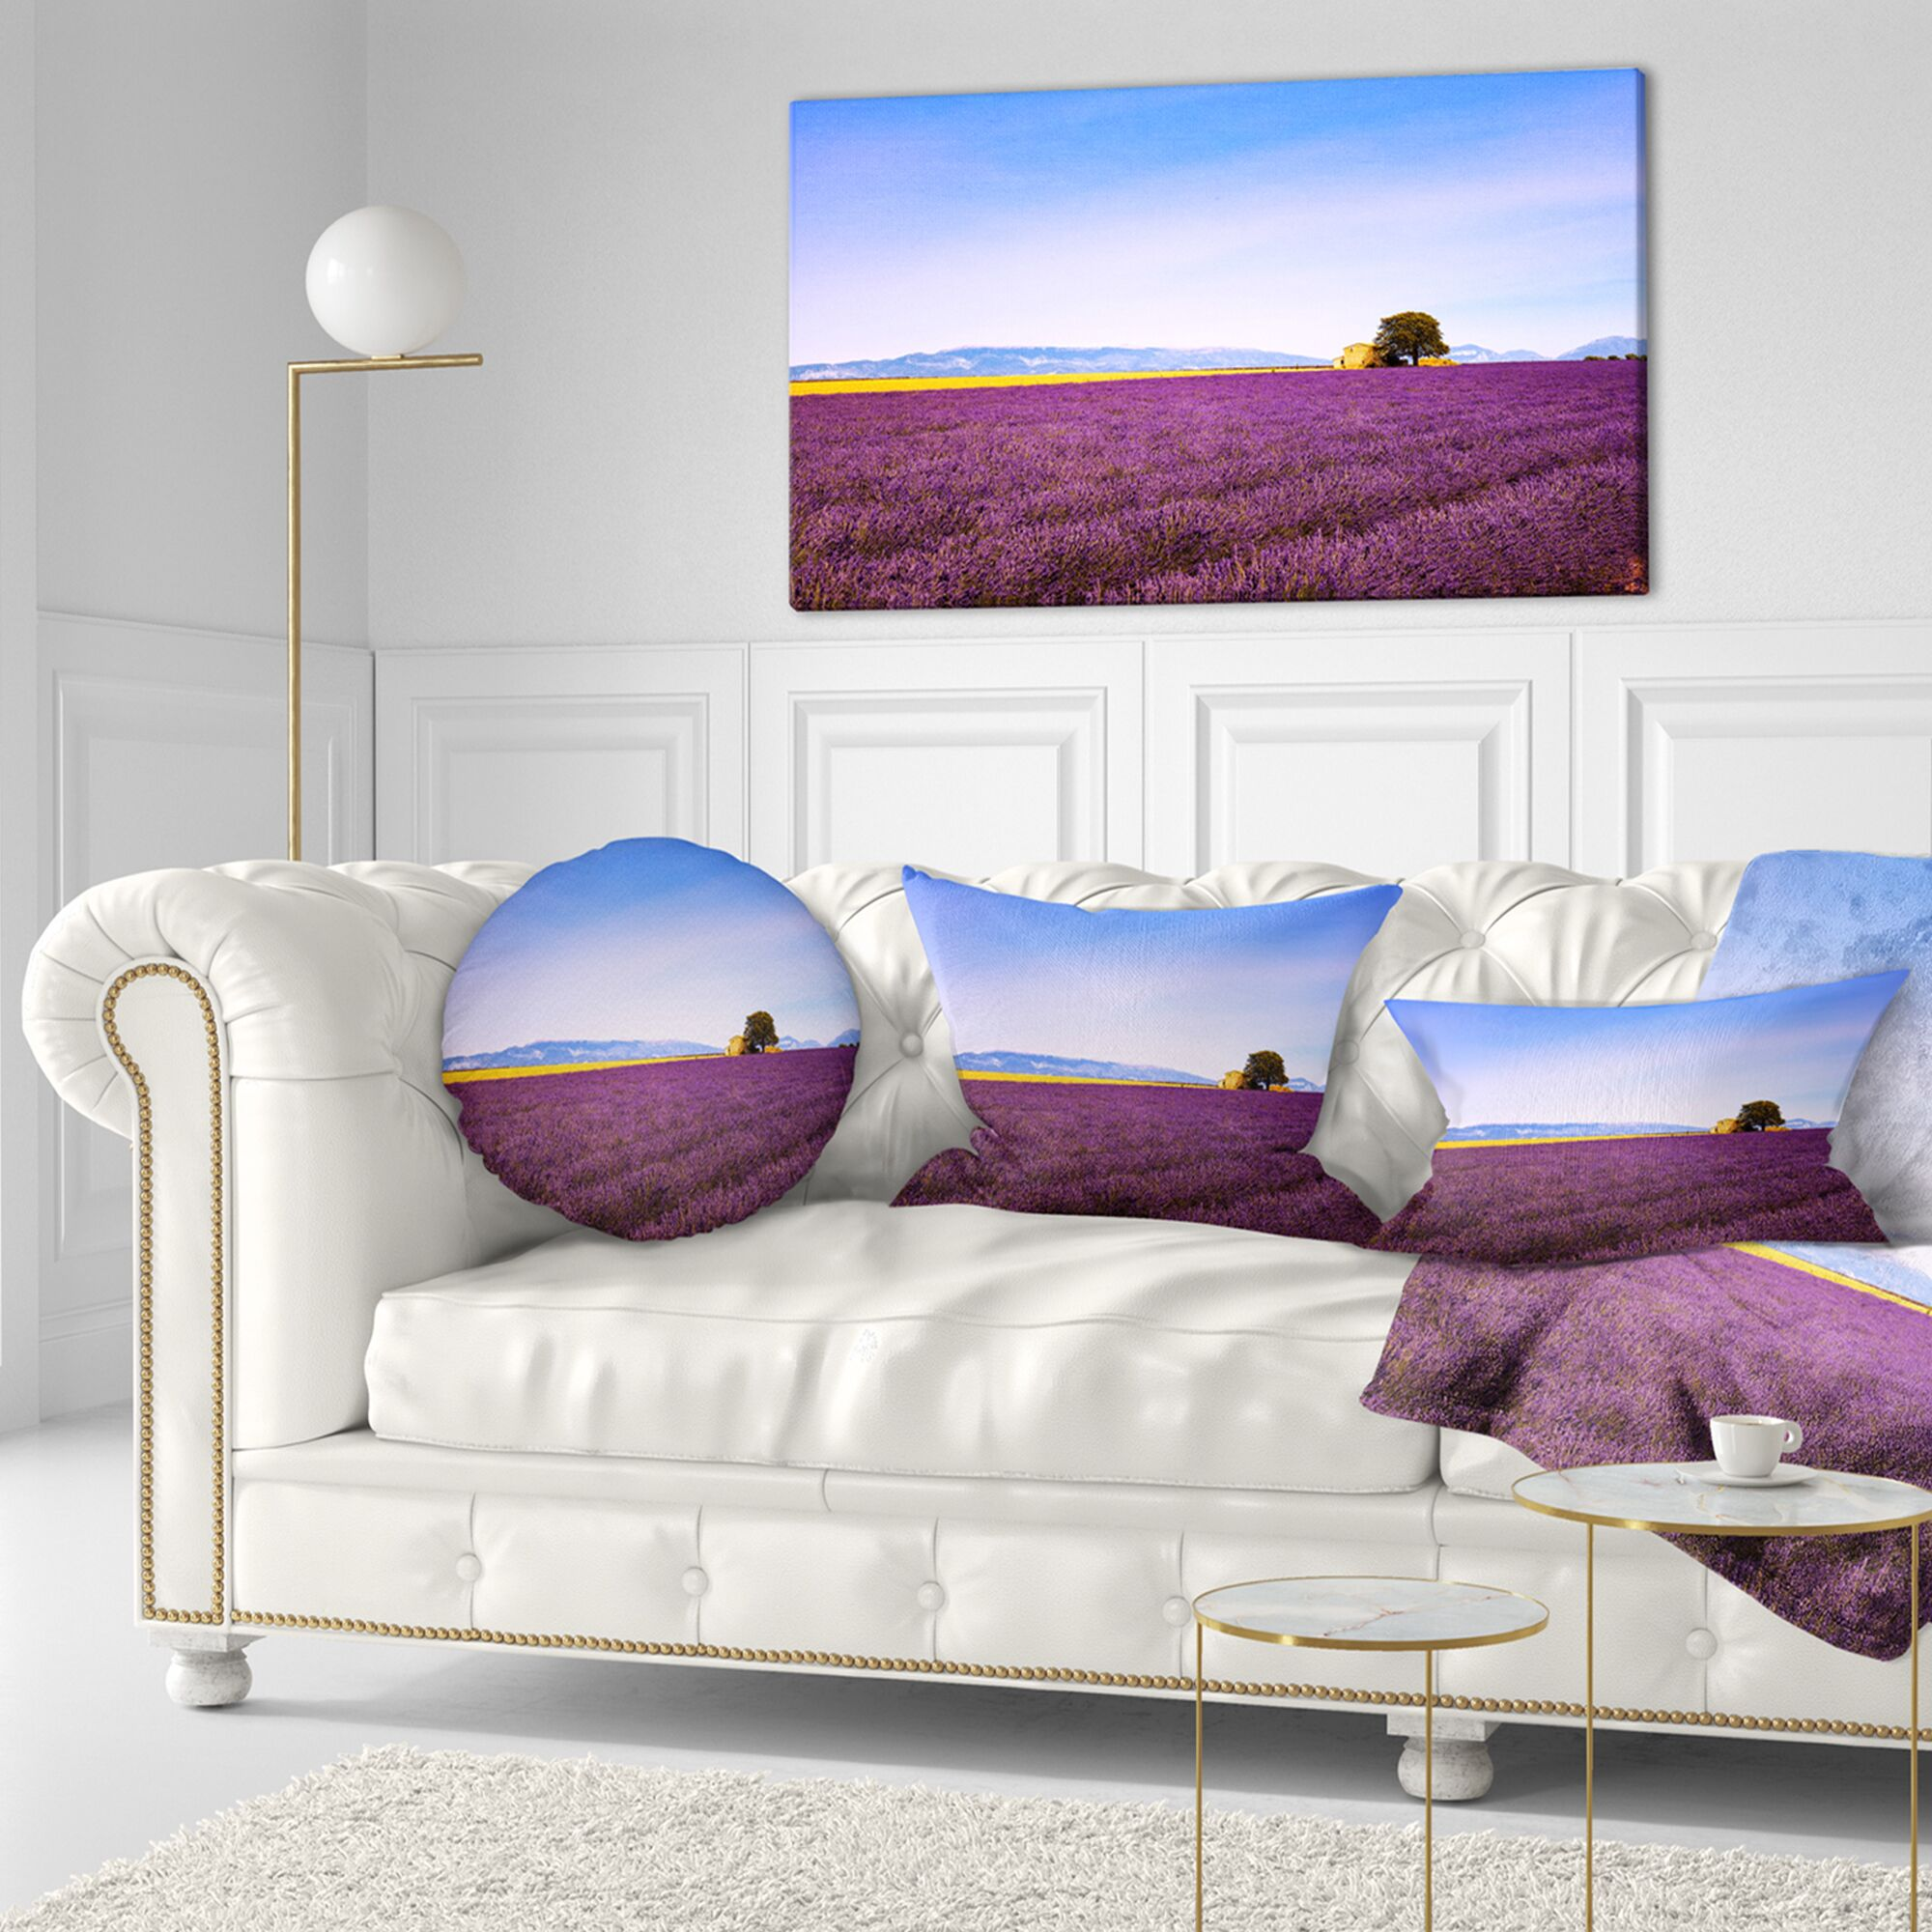 Landscape Wall Lavender Flowers with Old House Lumbar Pillow